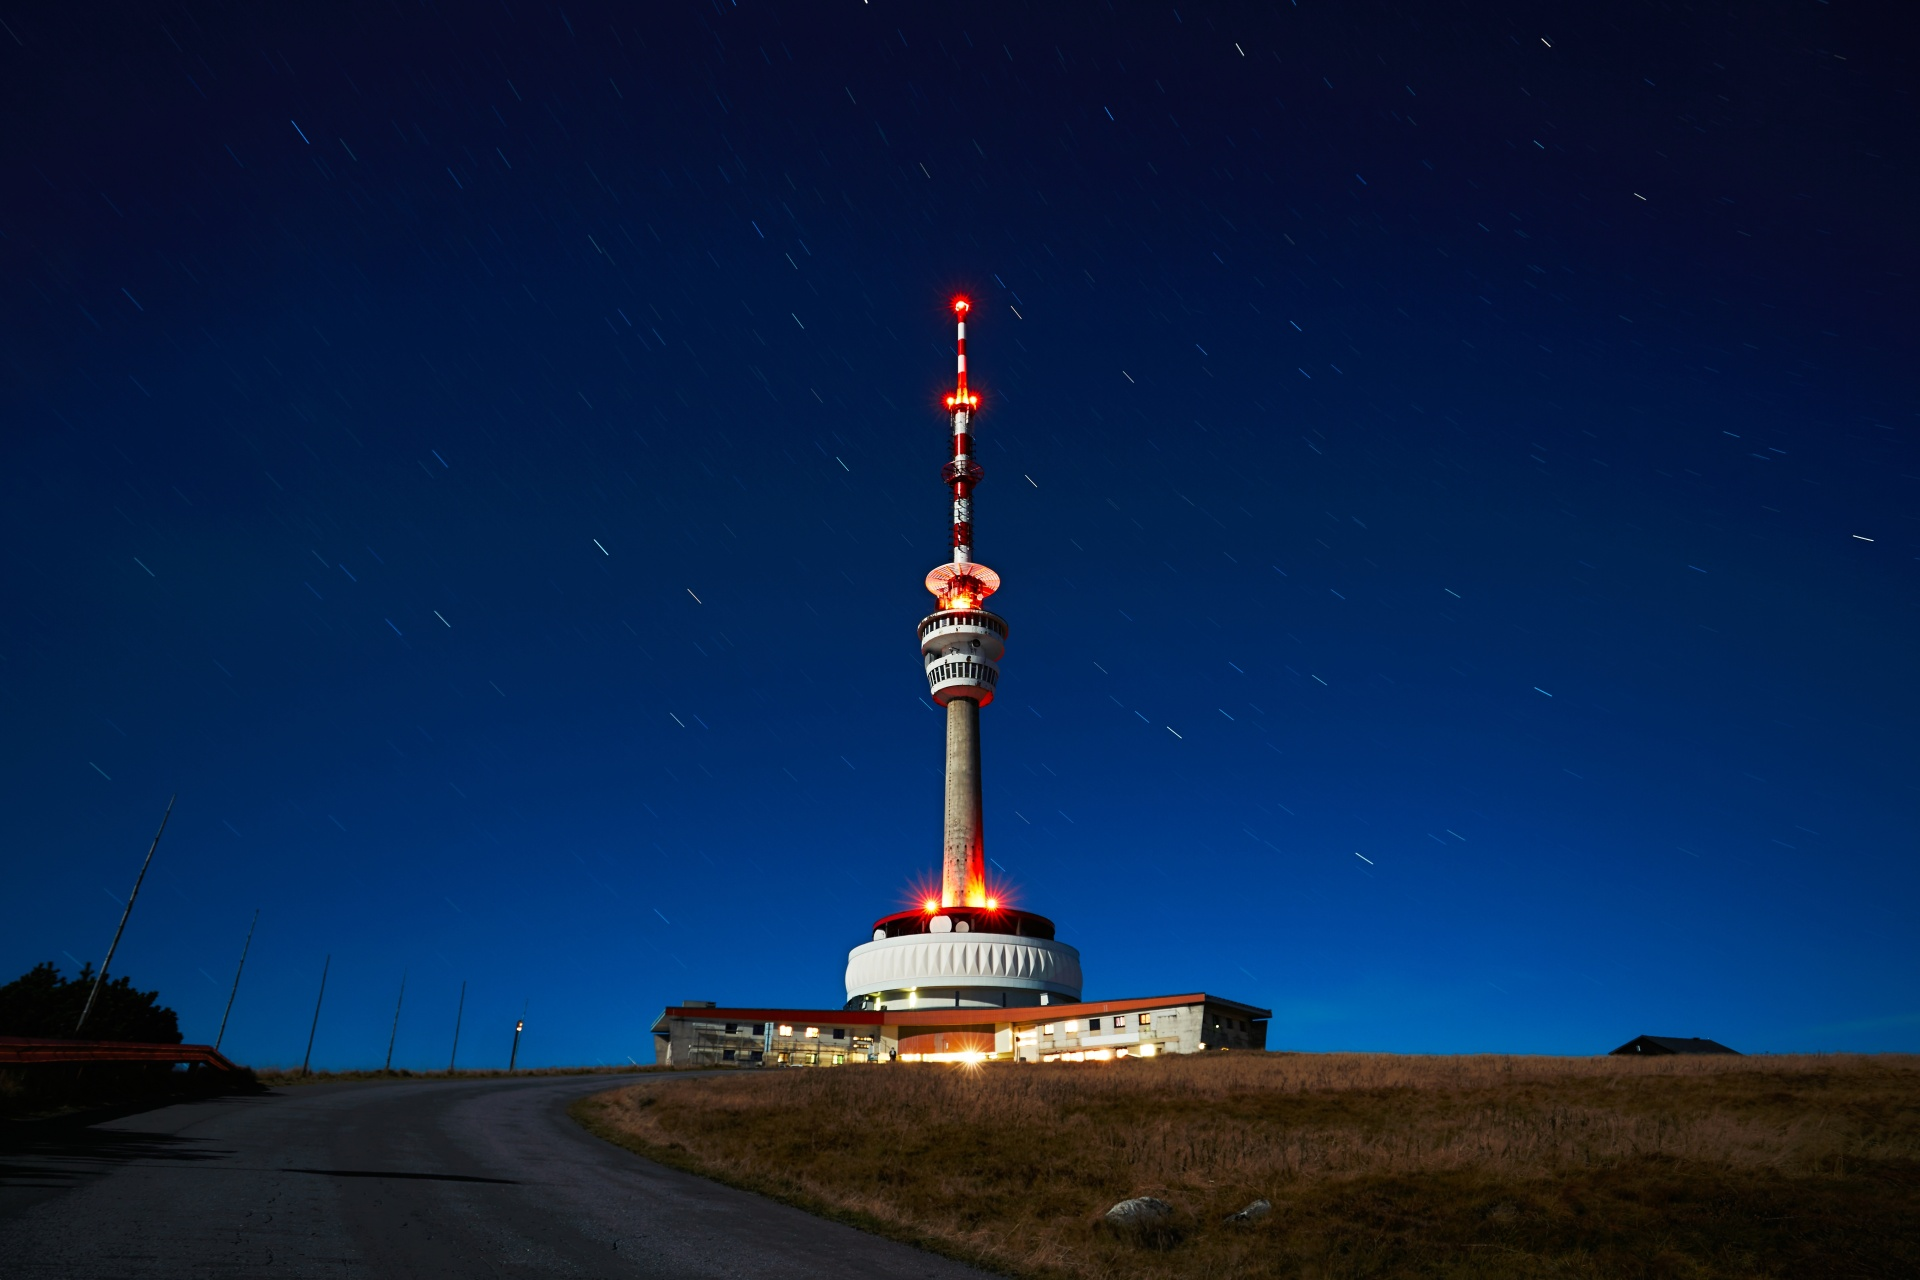 Starry night in the Czech Republic - TV transmitter